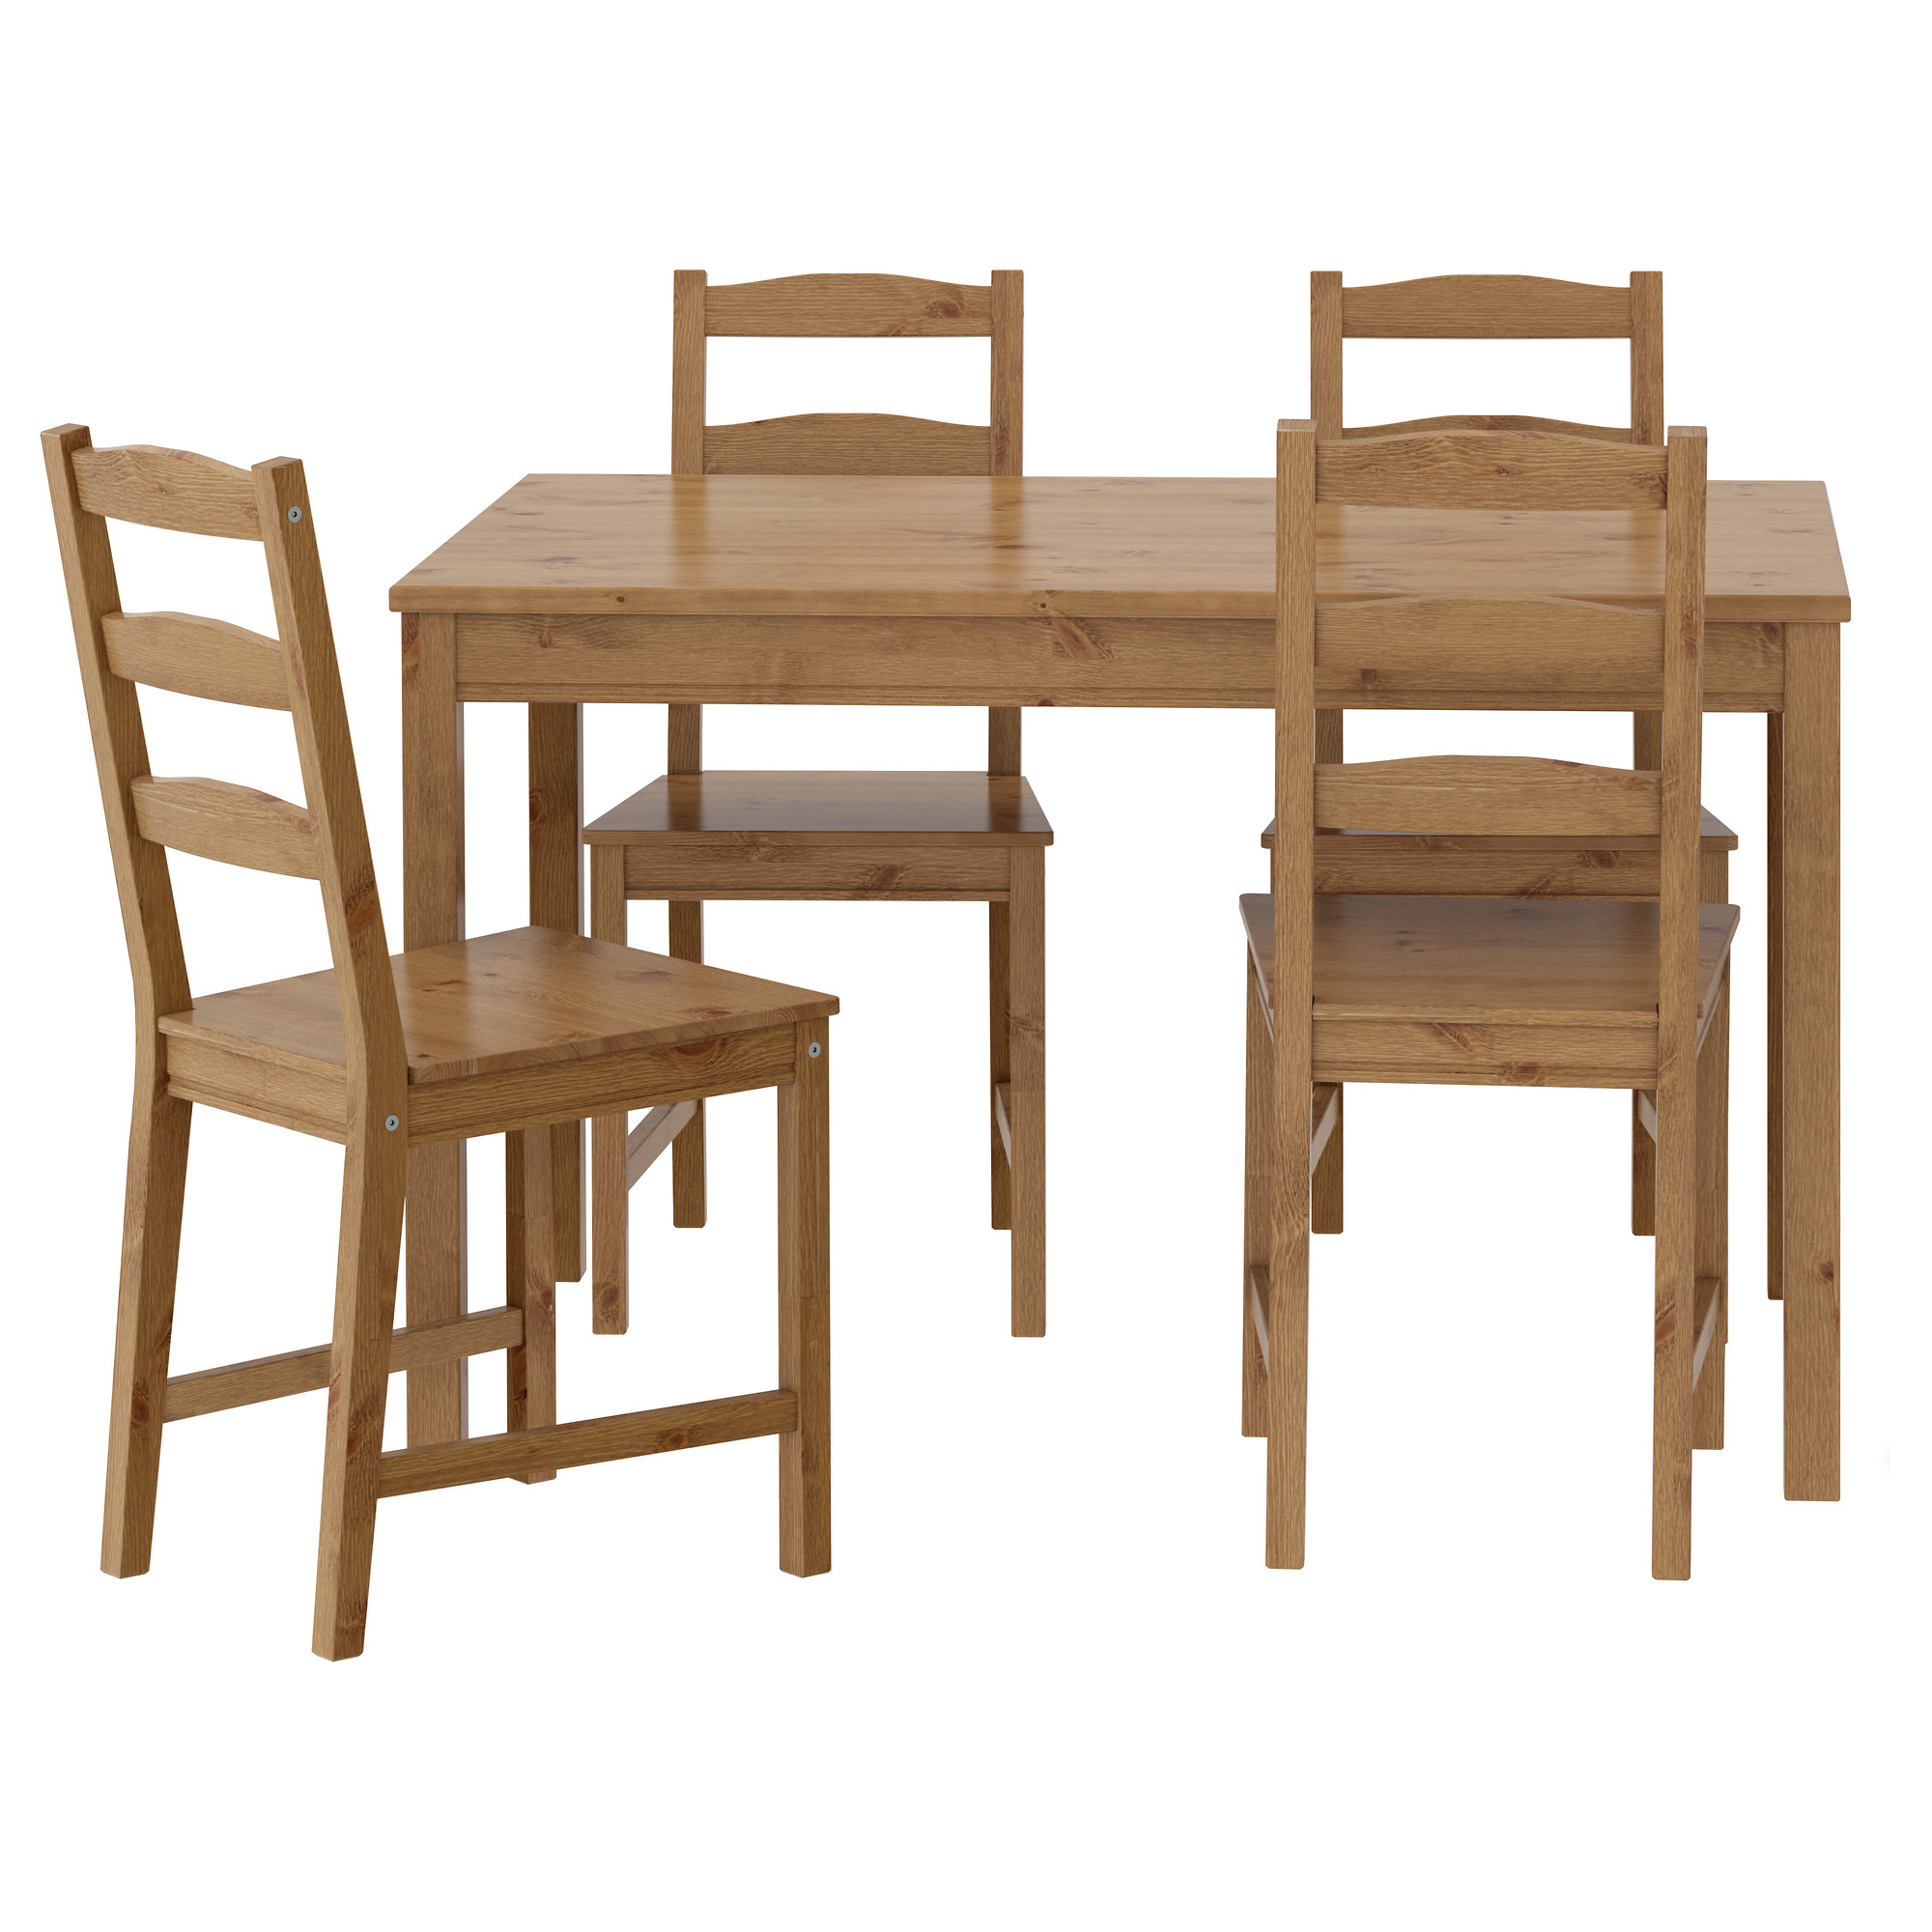 Awesome dining table and 4 chairs jokkmokk table and 4 chairs - ikea fgrcmvw